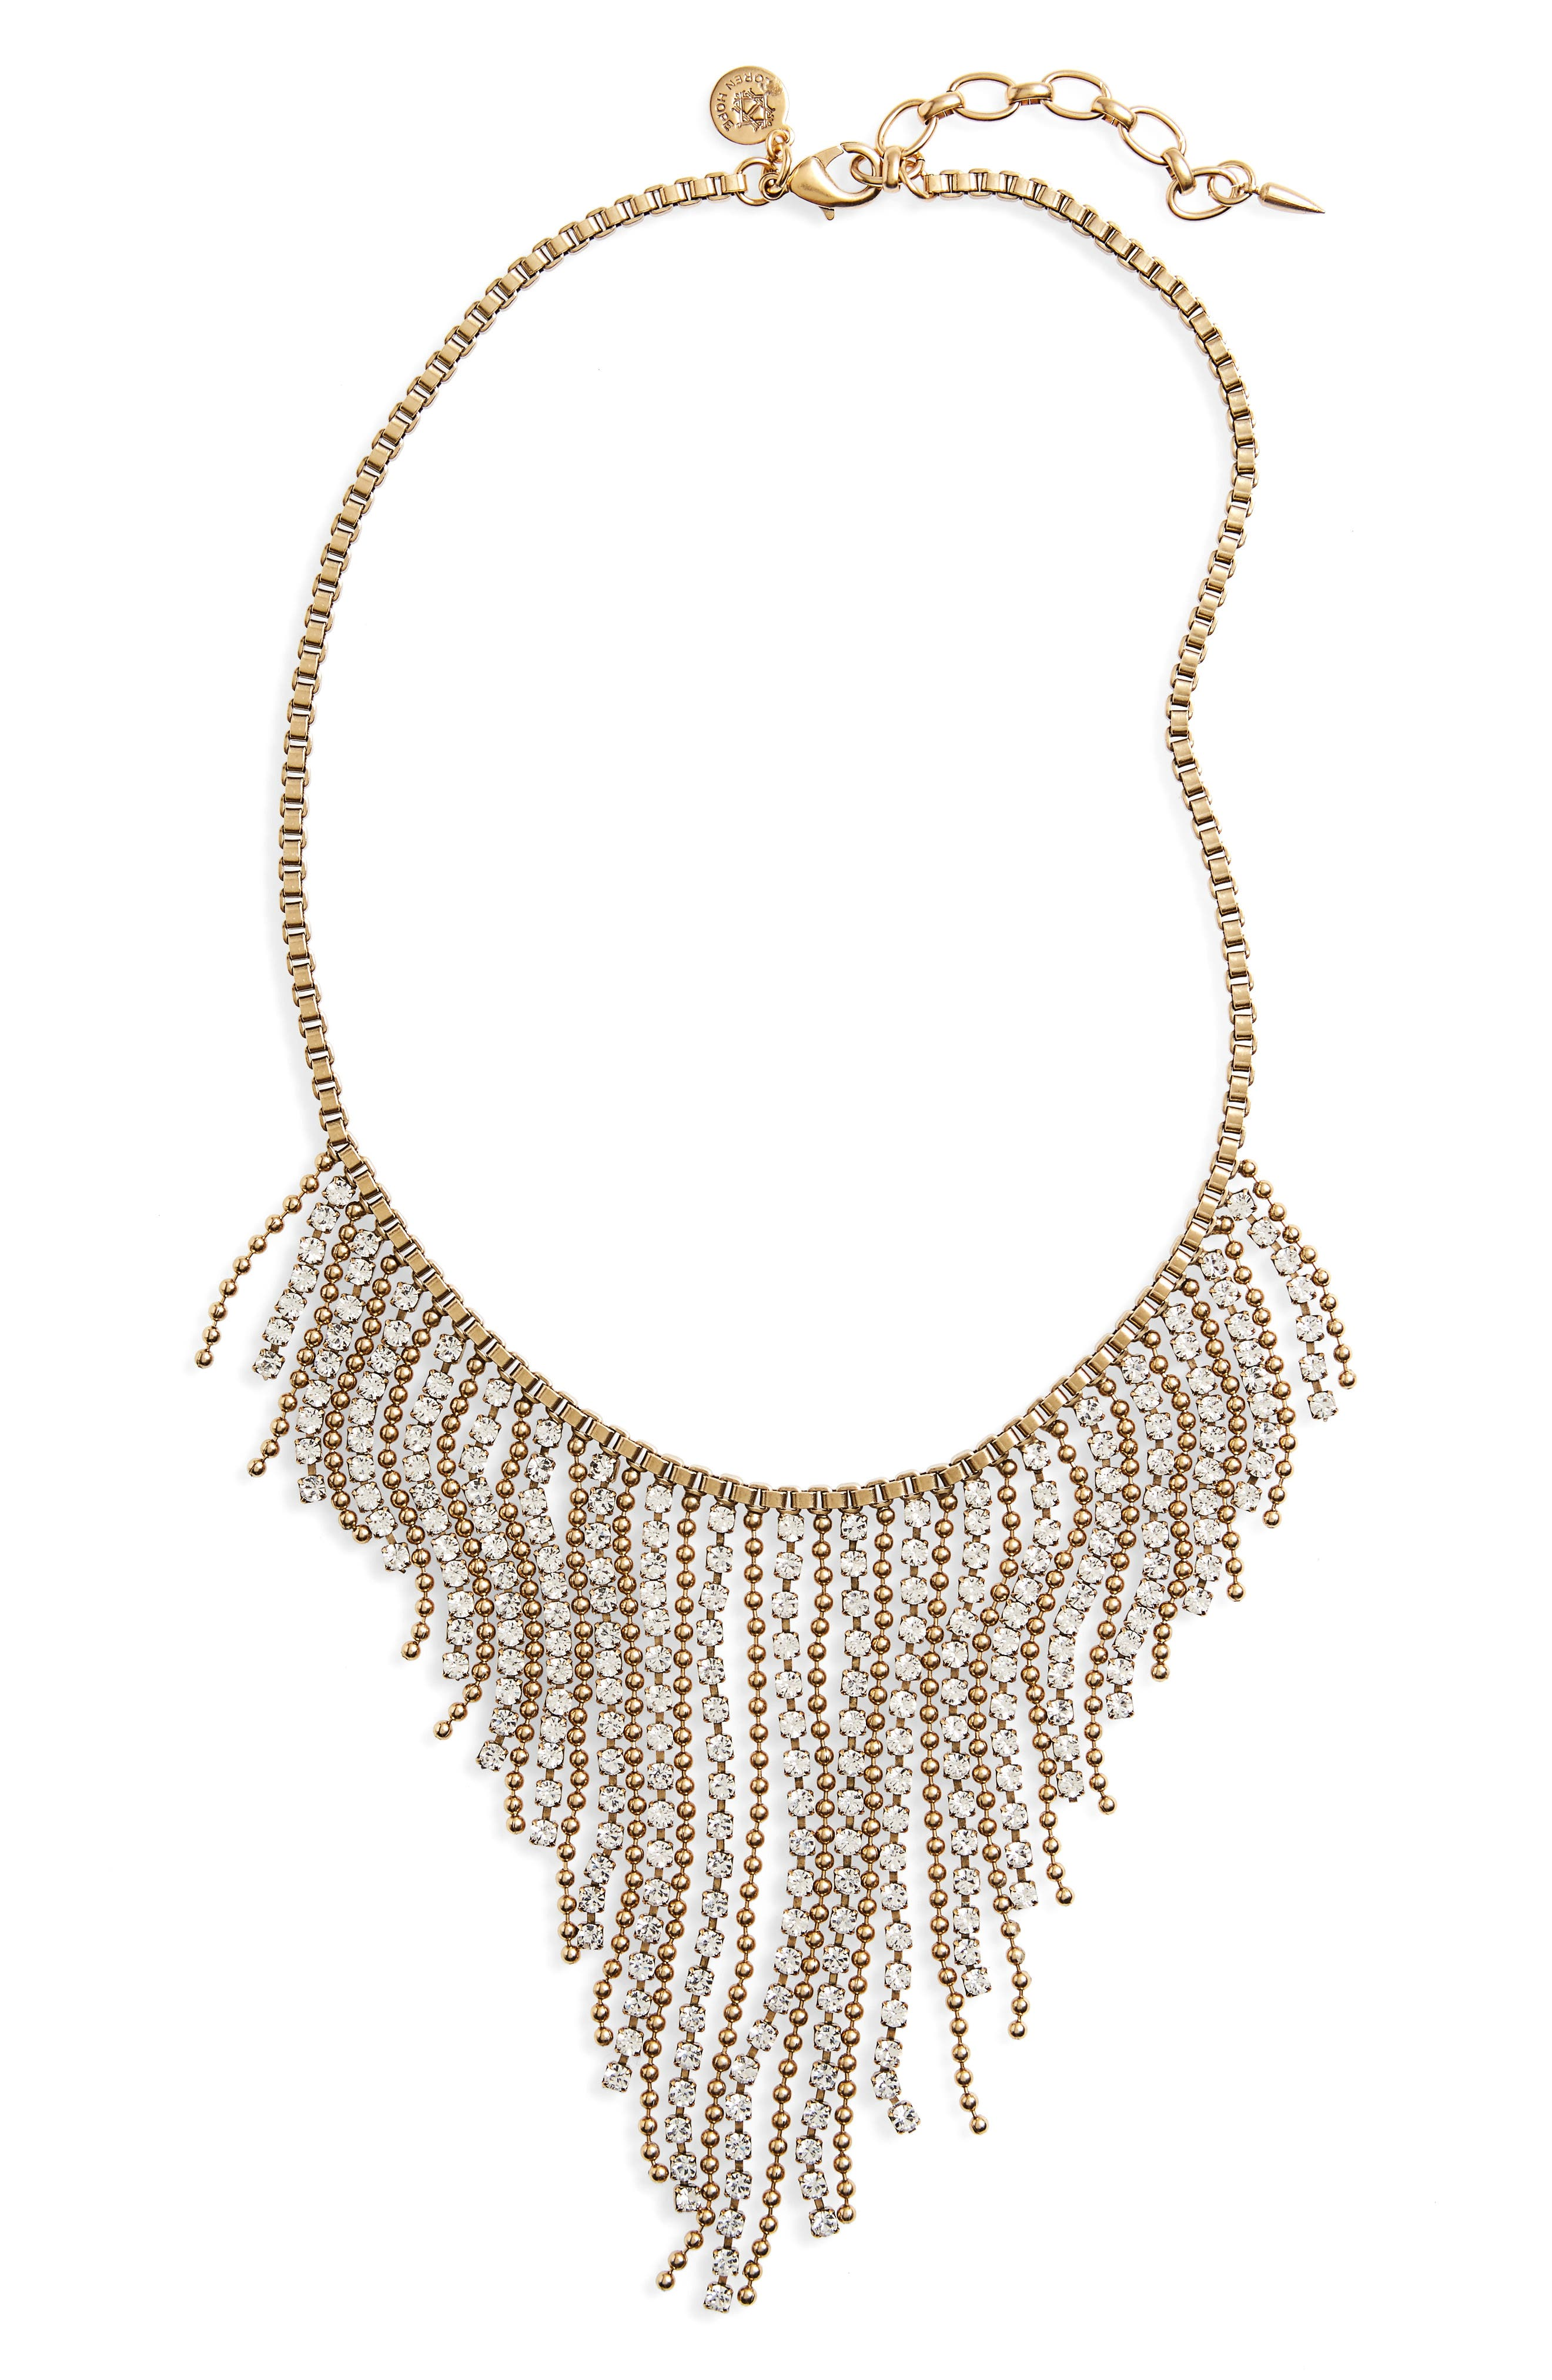 Loren Hope Joanna Frontal Necklace